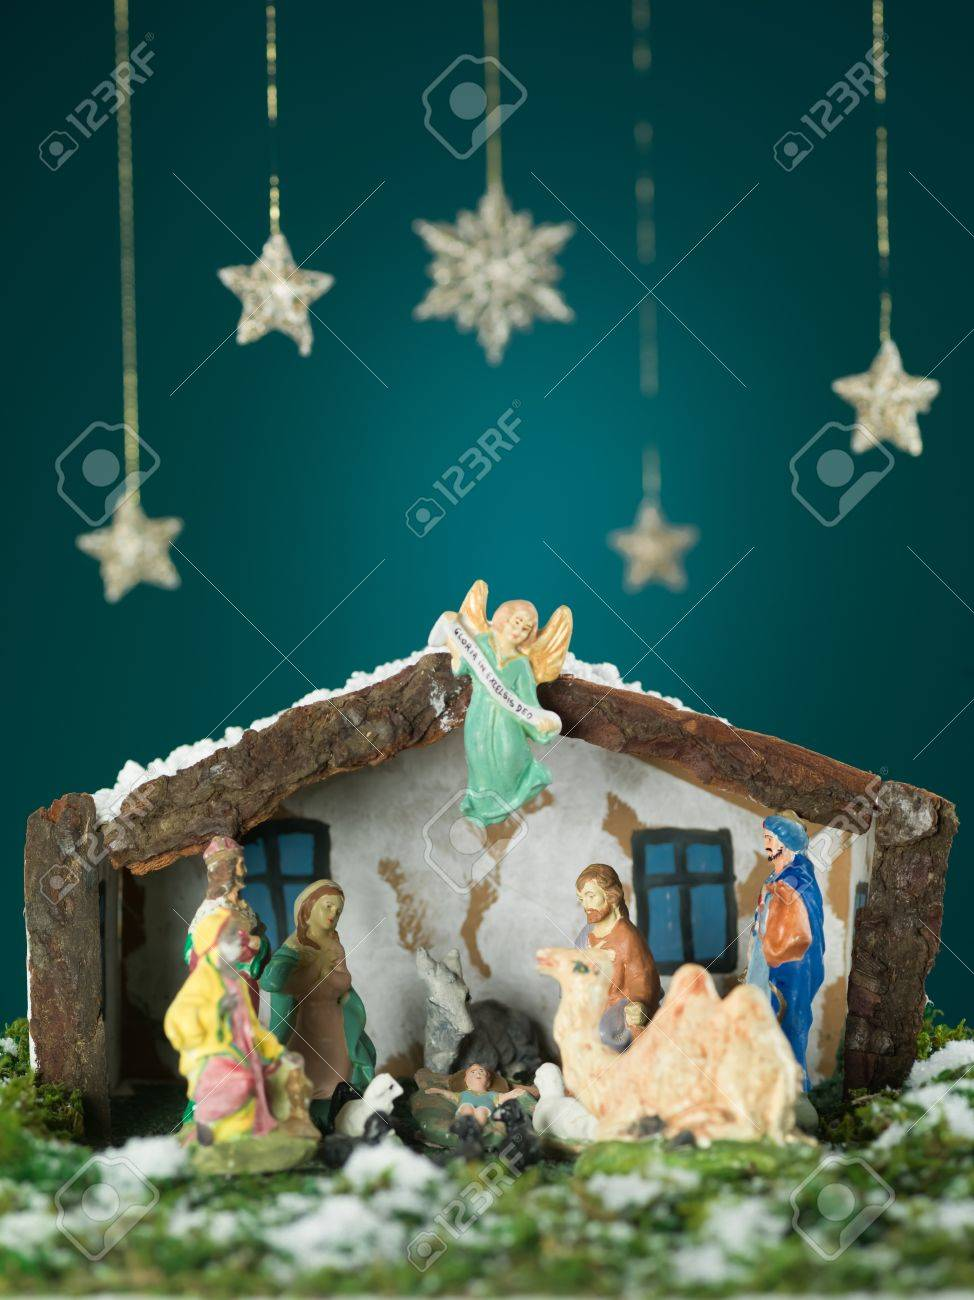 closeup of birth of baby jesus scene with wooden figurines snow